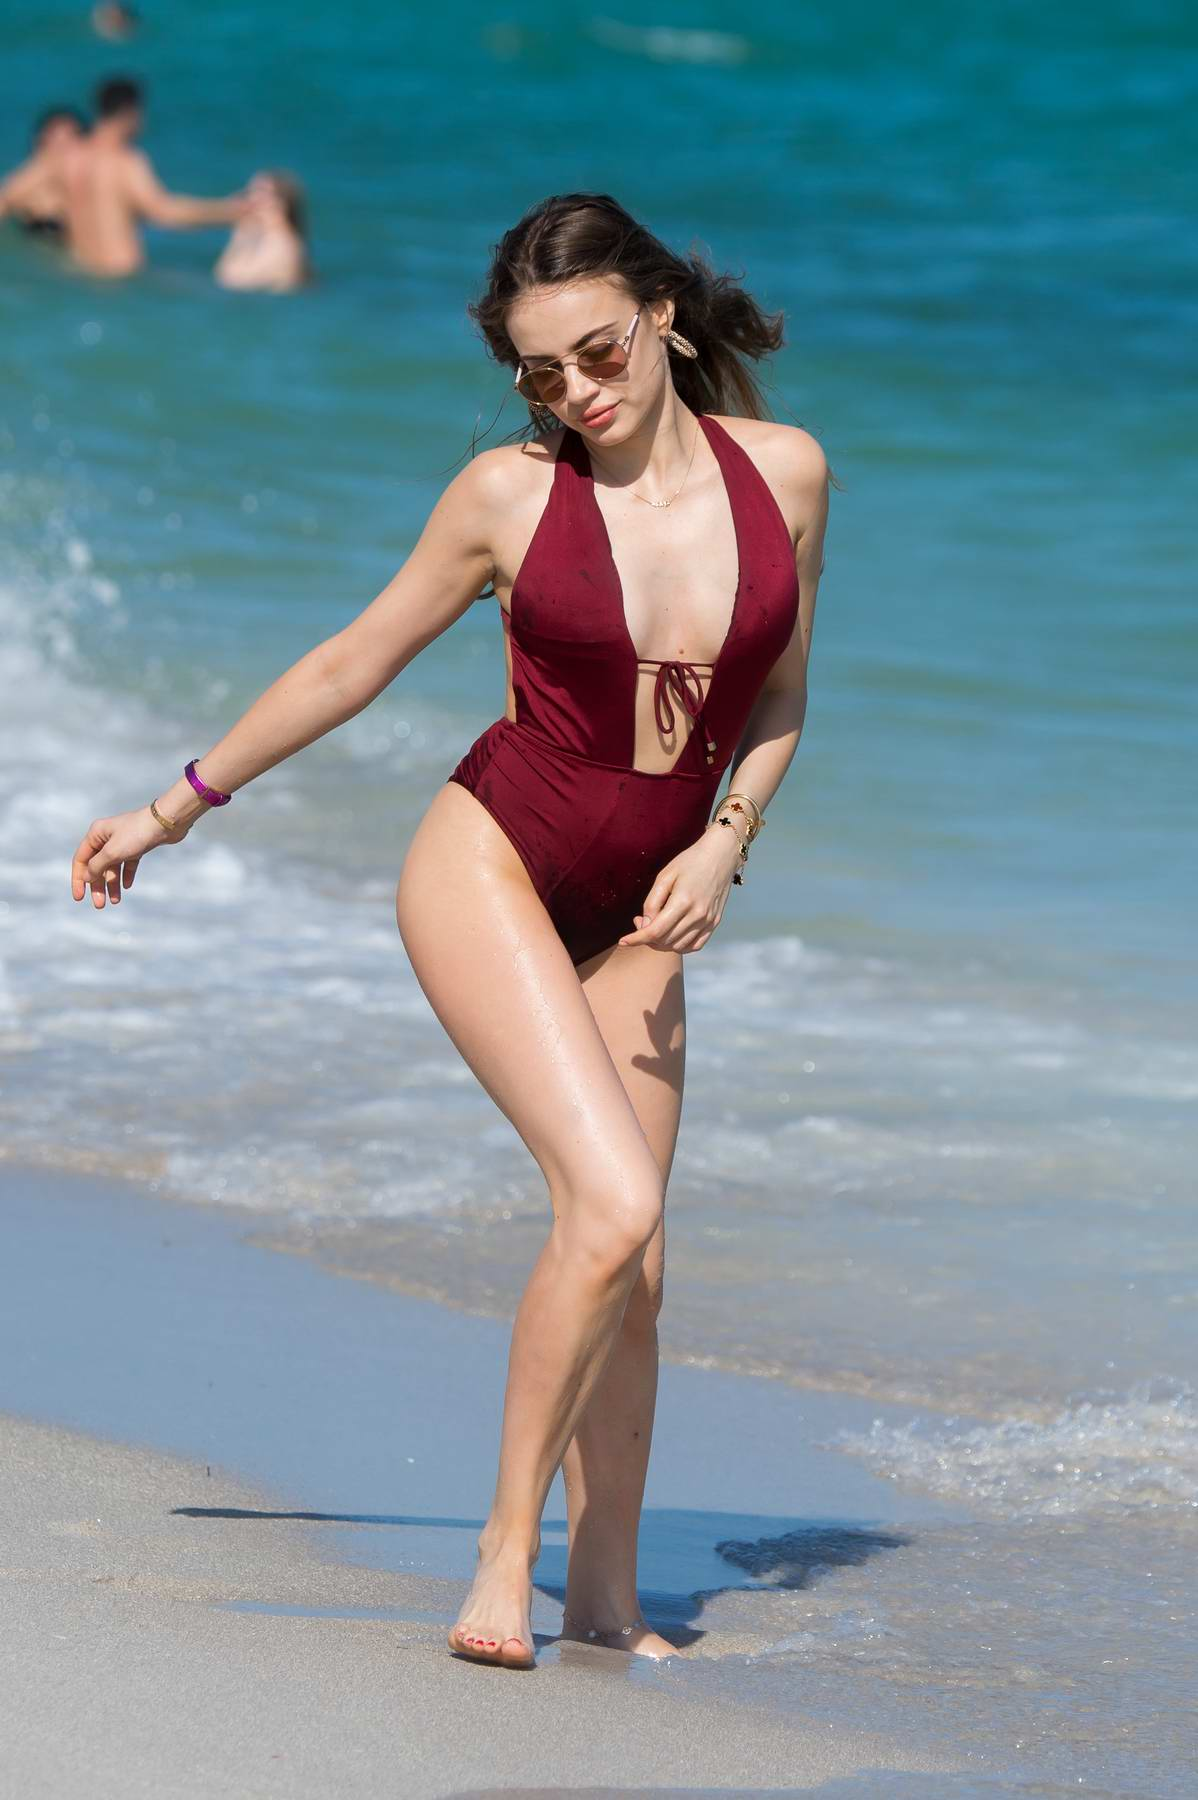 Xenia Tchoumitcheva in a red swimsuit enjoys a day on the beach in Miami, Florida